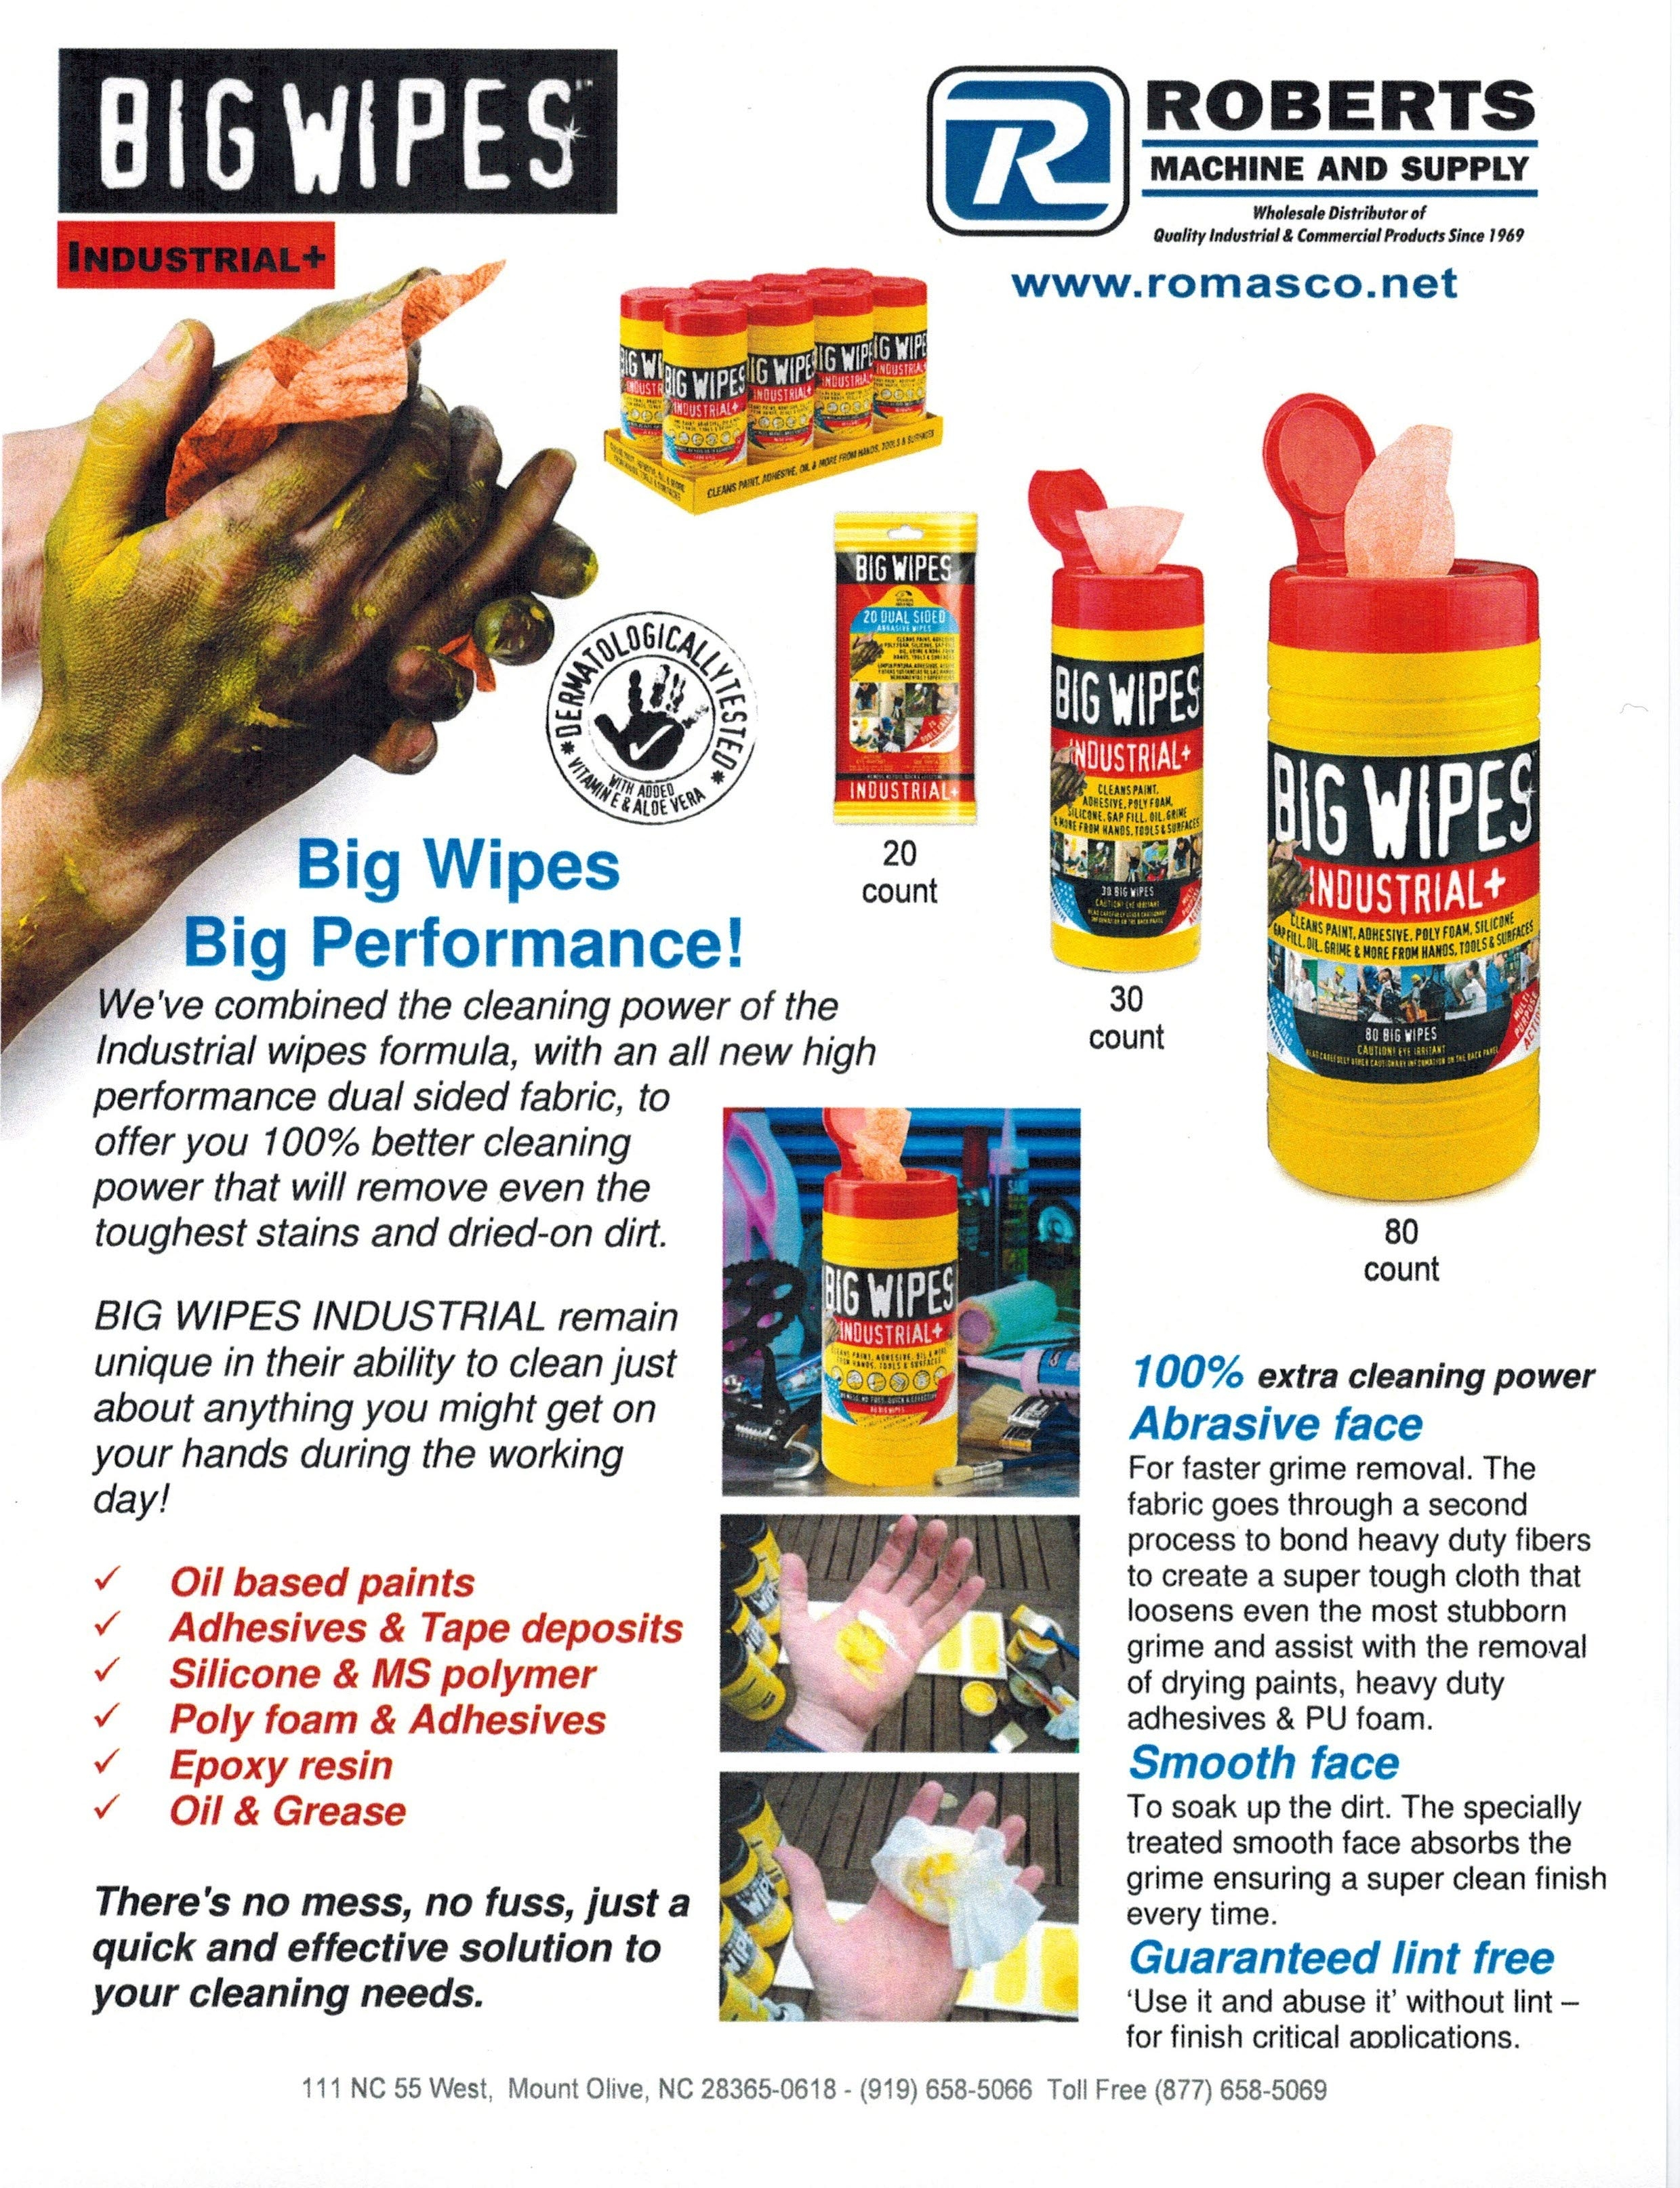 Big Wipes Industrial